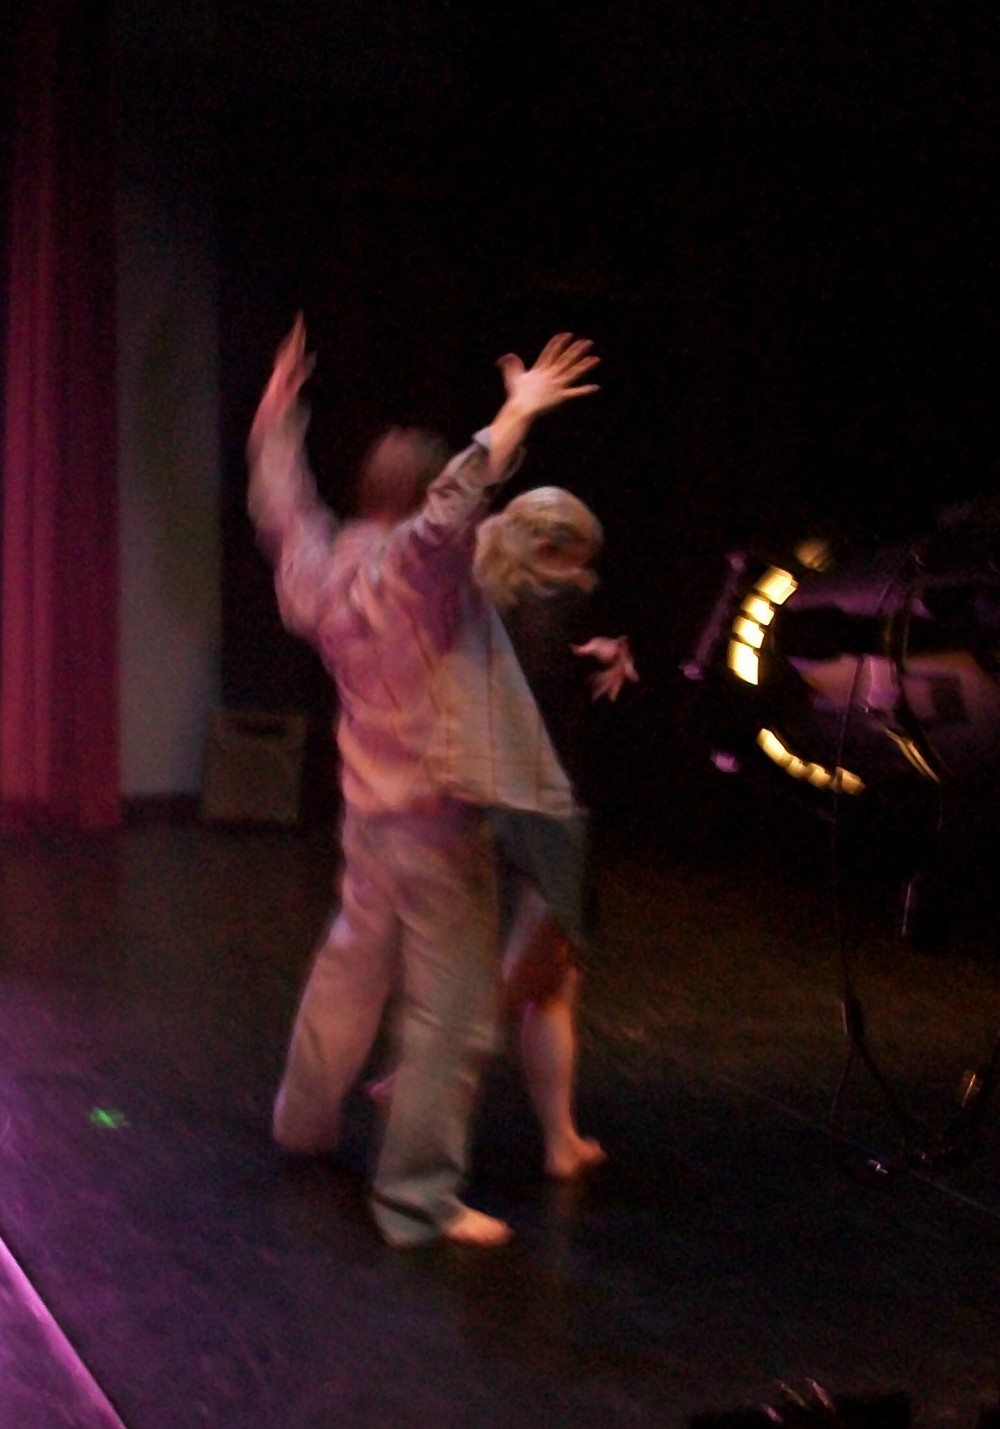 Margaret Brewster Willingham dancing with Joe Jensen, 2010.